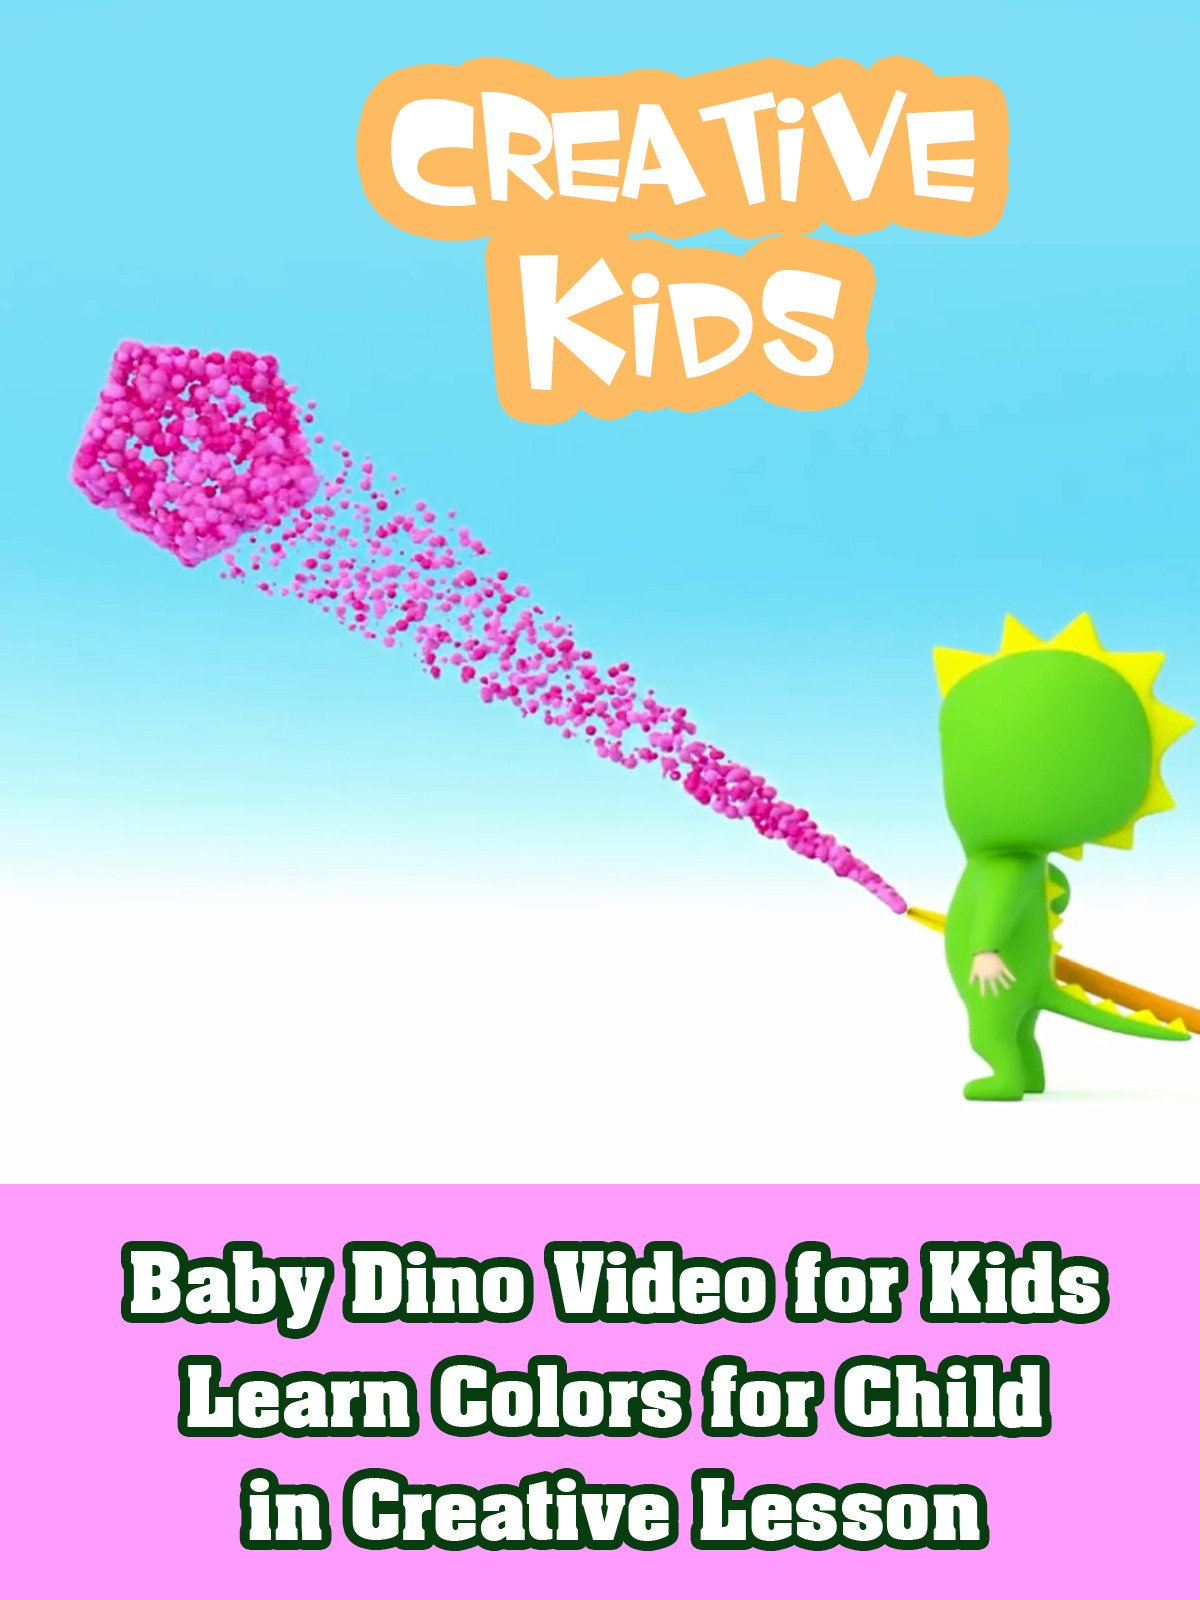 Baby Dino Video for Kids